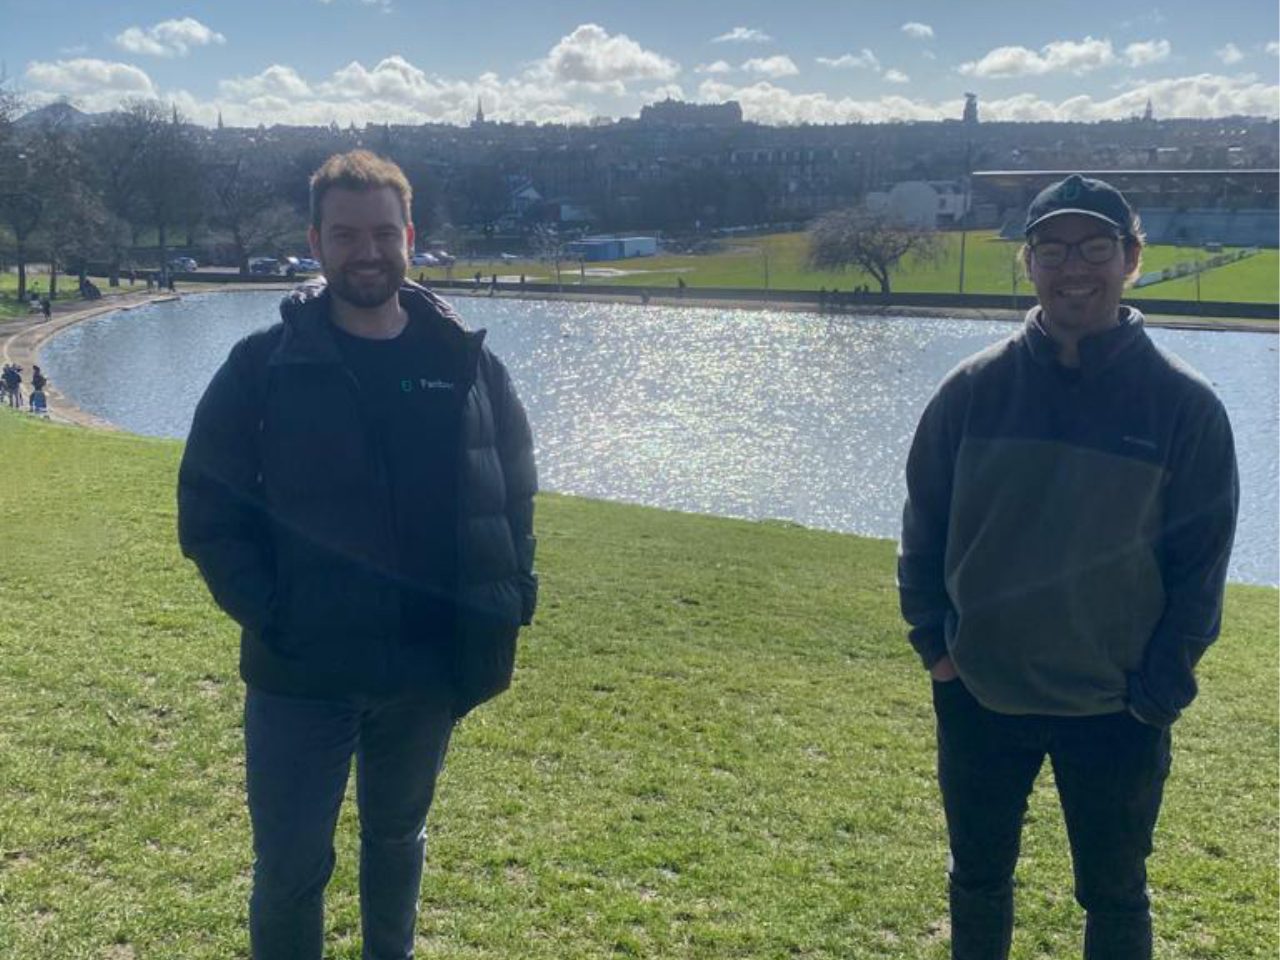 Sports clubs across the UK set to welcome fans back to stadiums with the help of a new Scottish-owned sports technology company